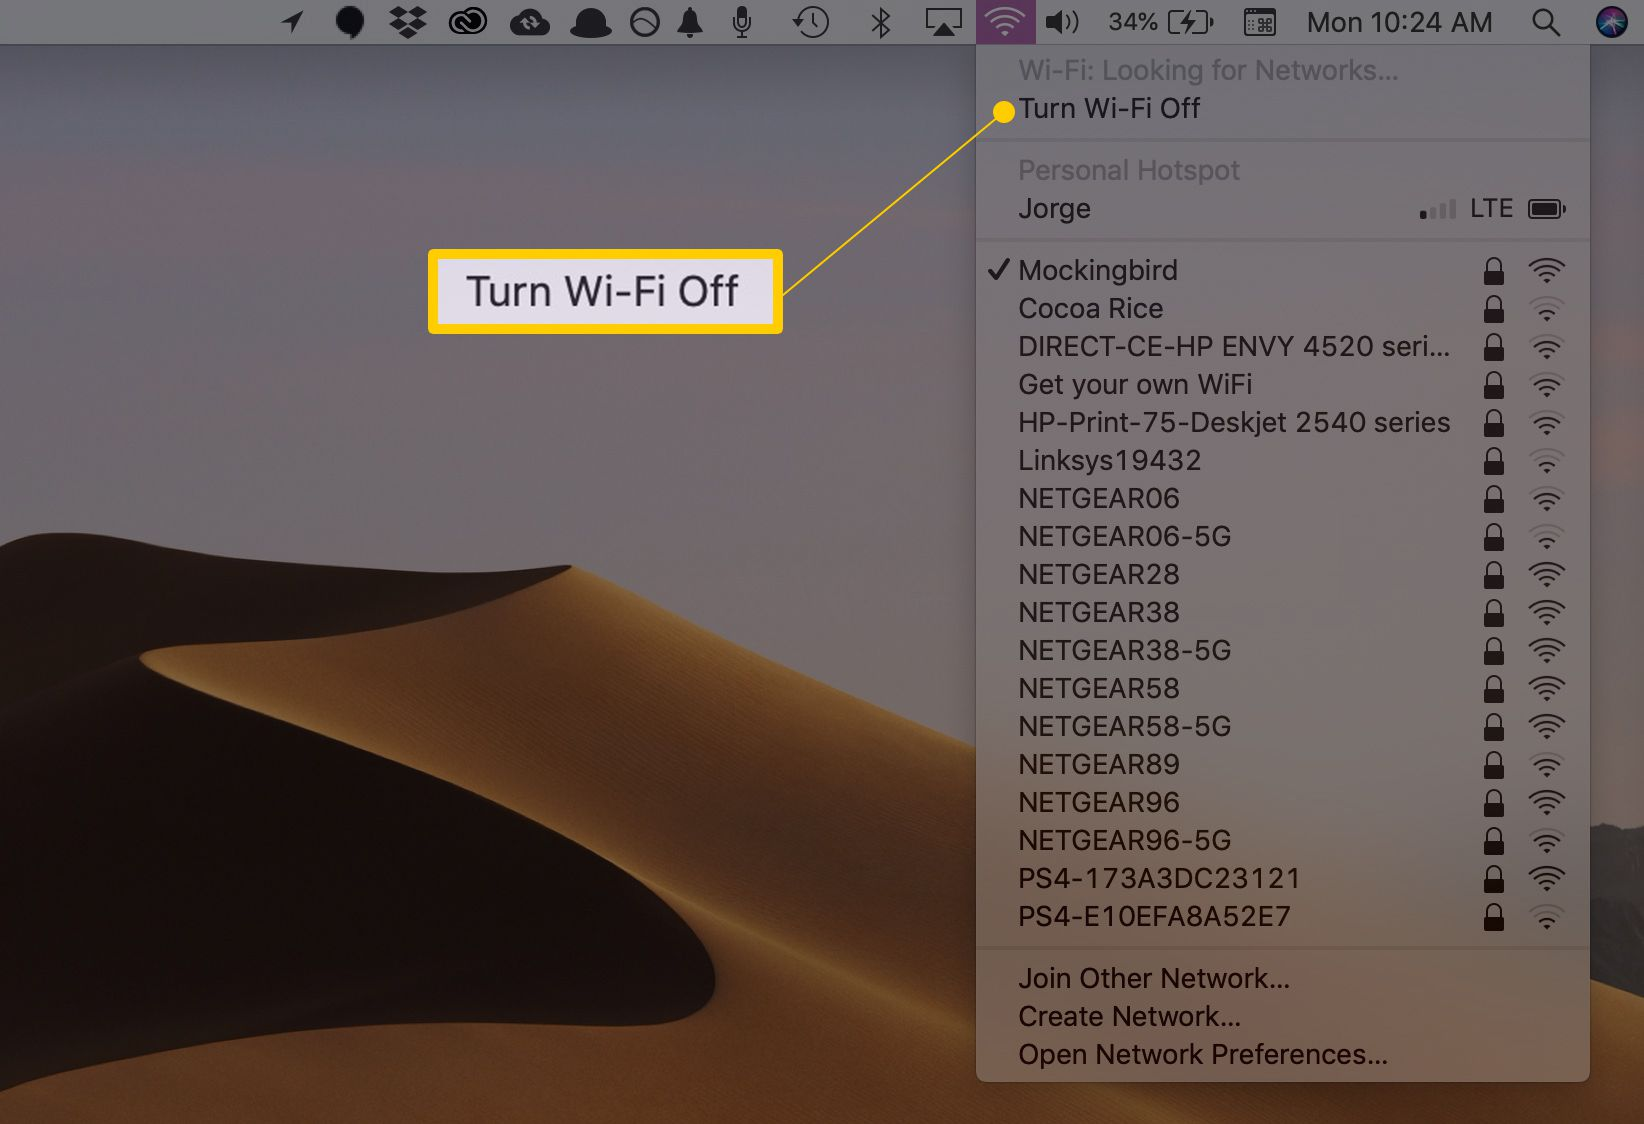 When And How To Turn Off Wi Fi On Your Devices Wiring A Whole House Computer Network Menu Item In Macos